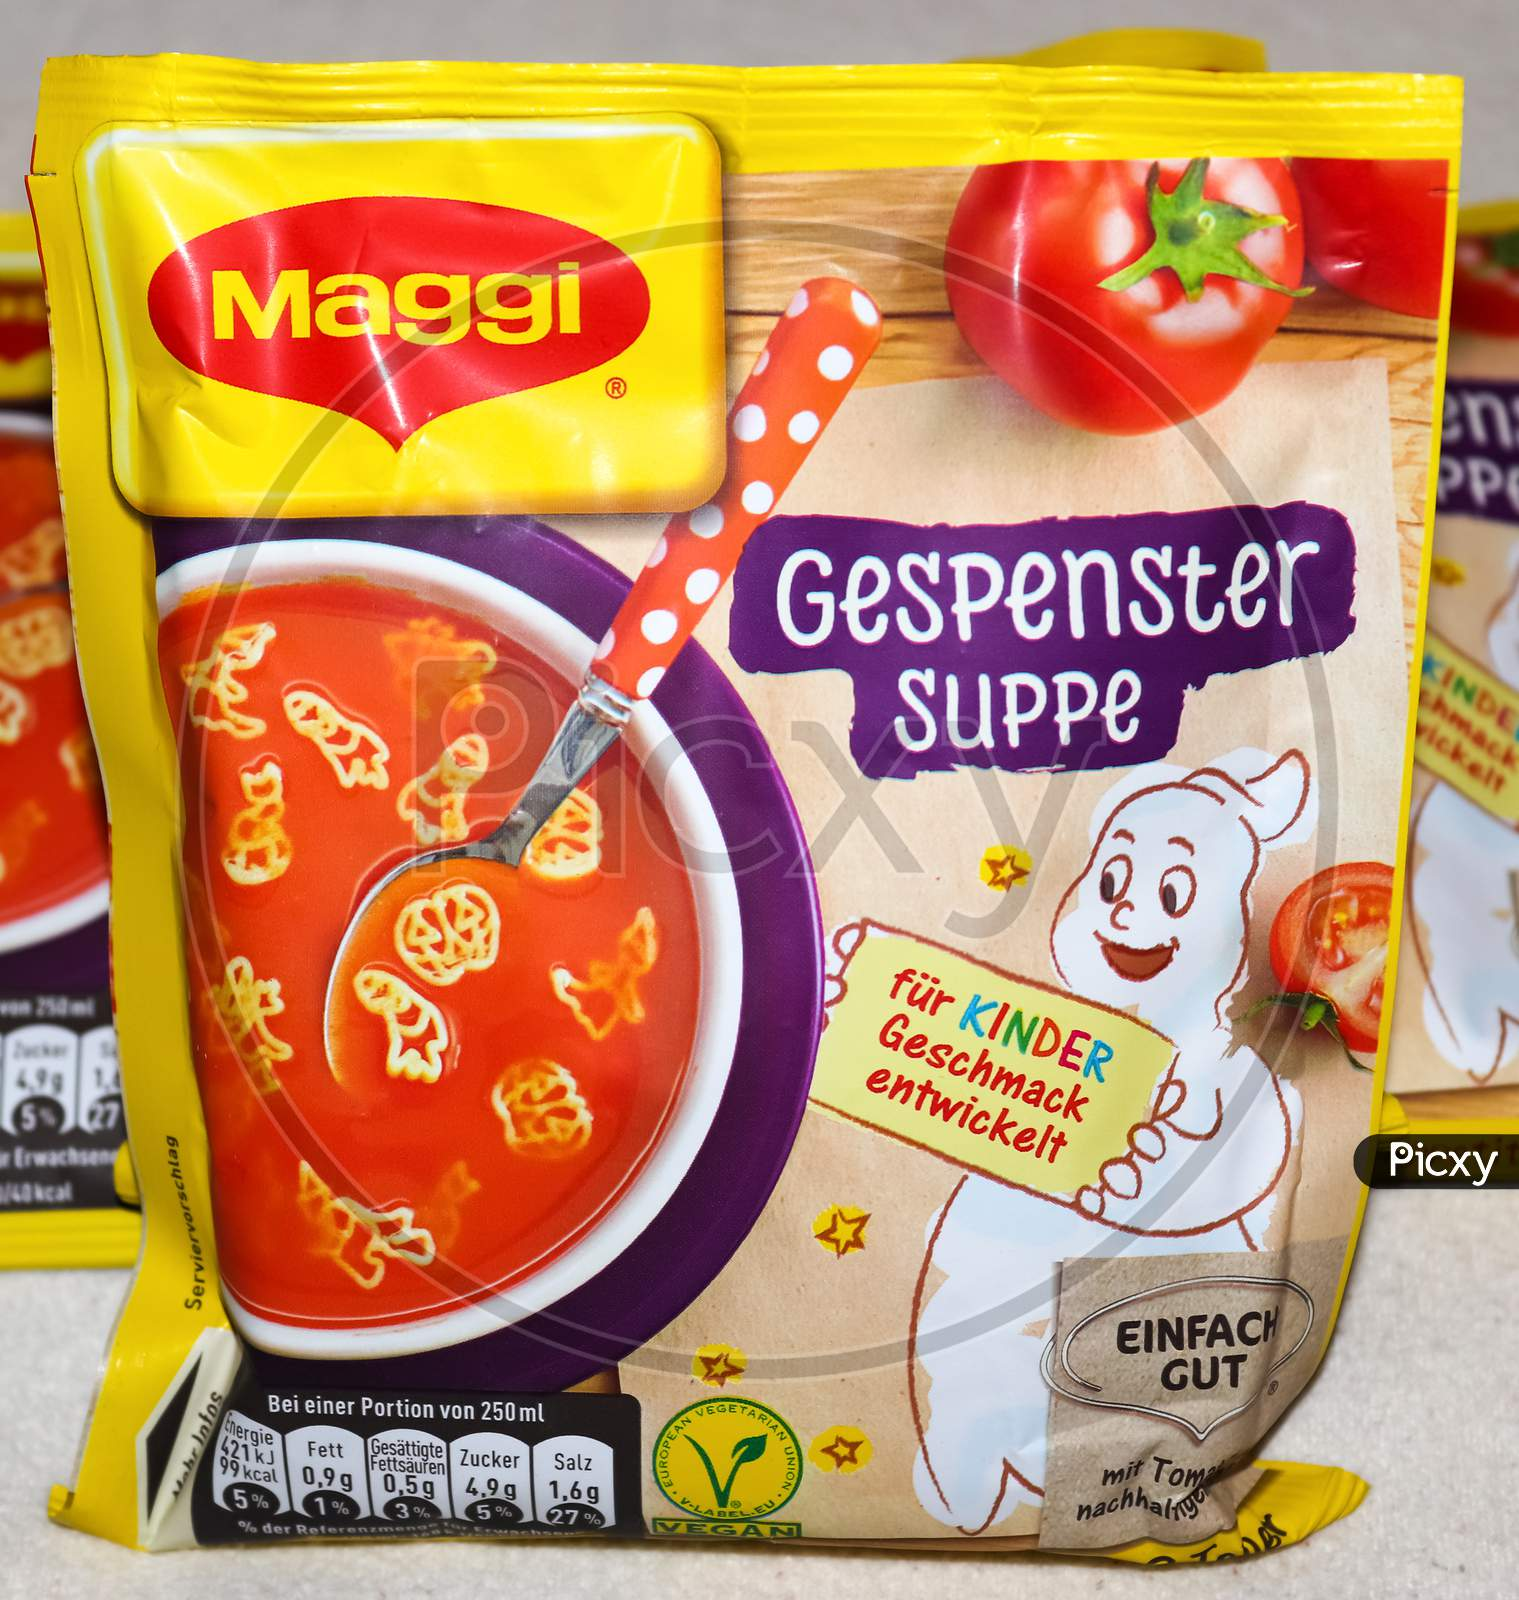 German Maggi Instant Noodles Called Gespenstersuppe Owned By Nestle, Maggi Is An International Brand Of Soups, Stocks, Bouillon Cubes, Ketchup, Sauces, Seasonings And Instant Noodles.